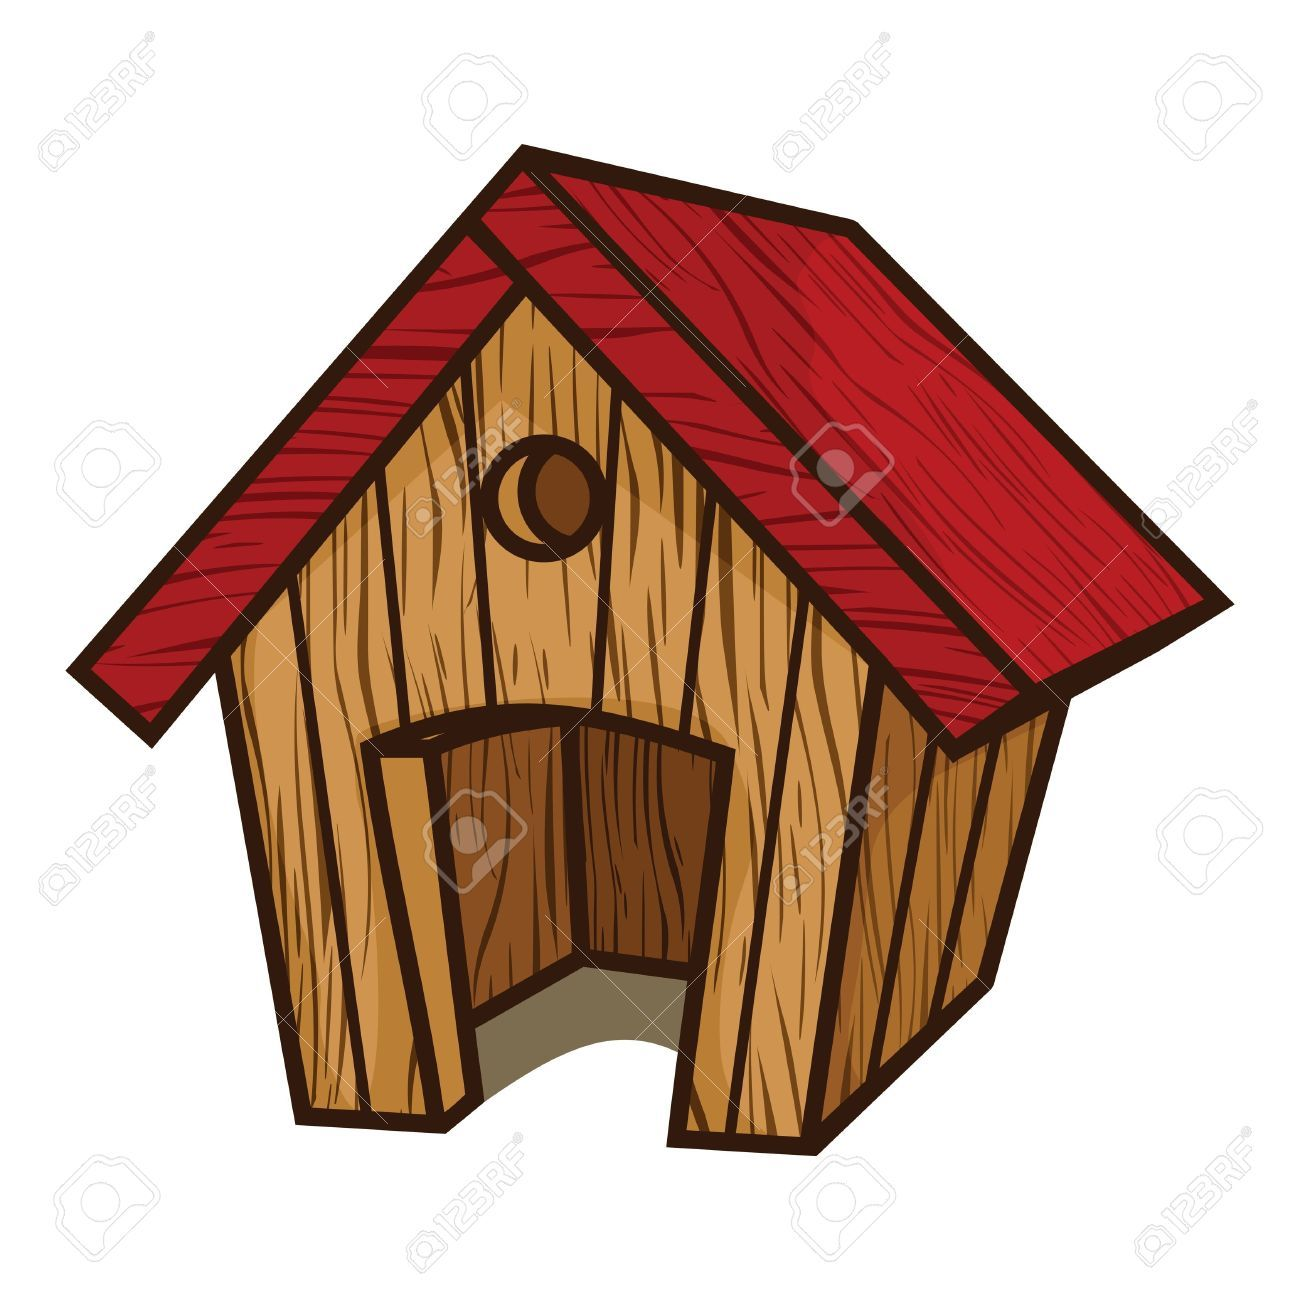 clipart of dog houses - photo #19